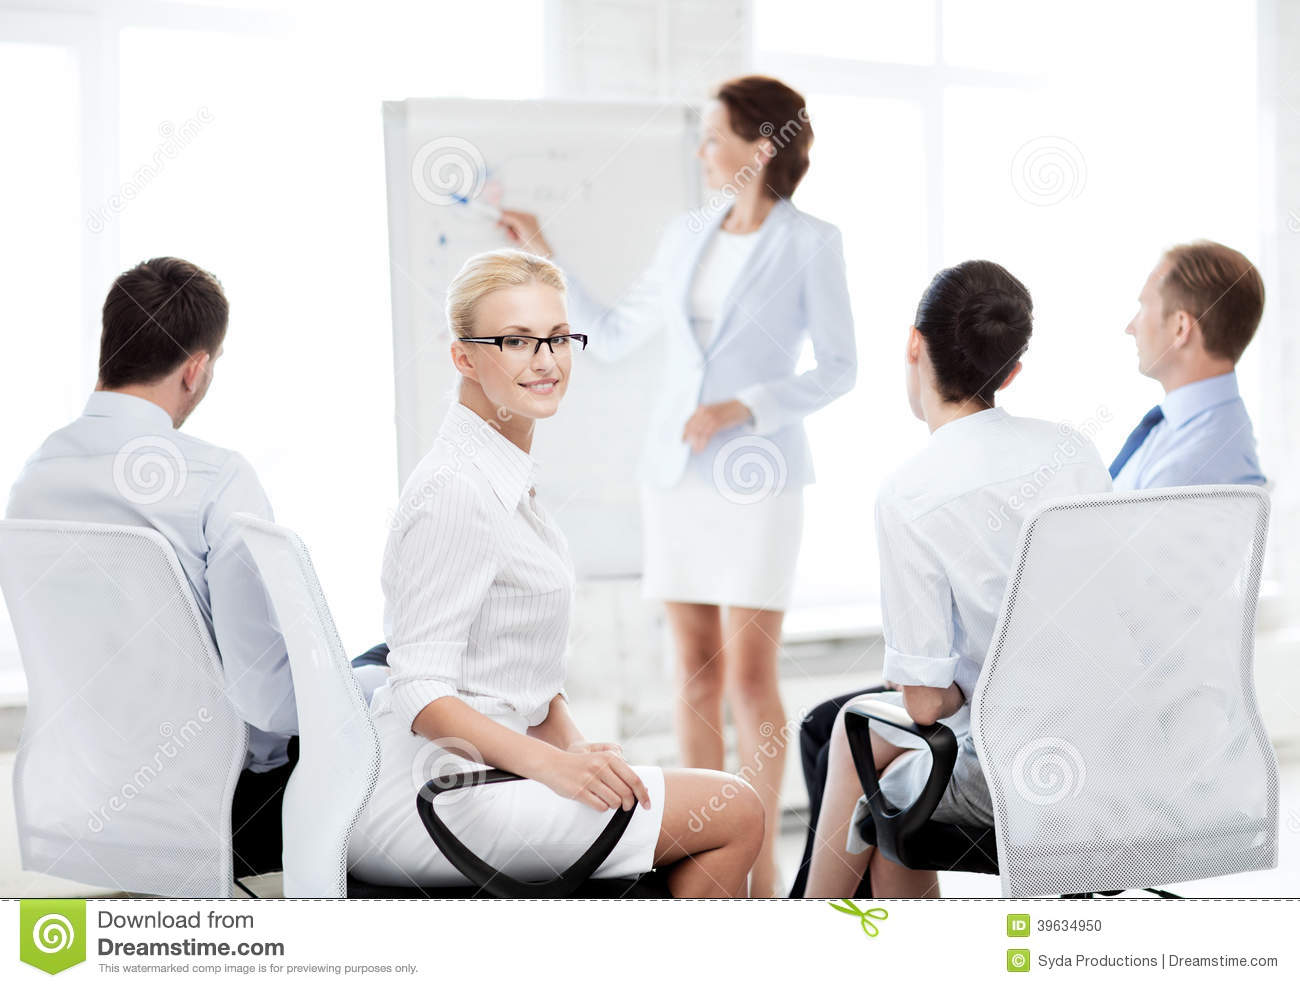 Businesswoman on business meeting in office